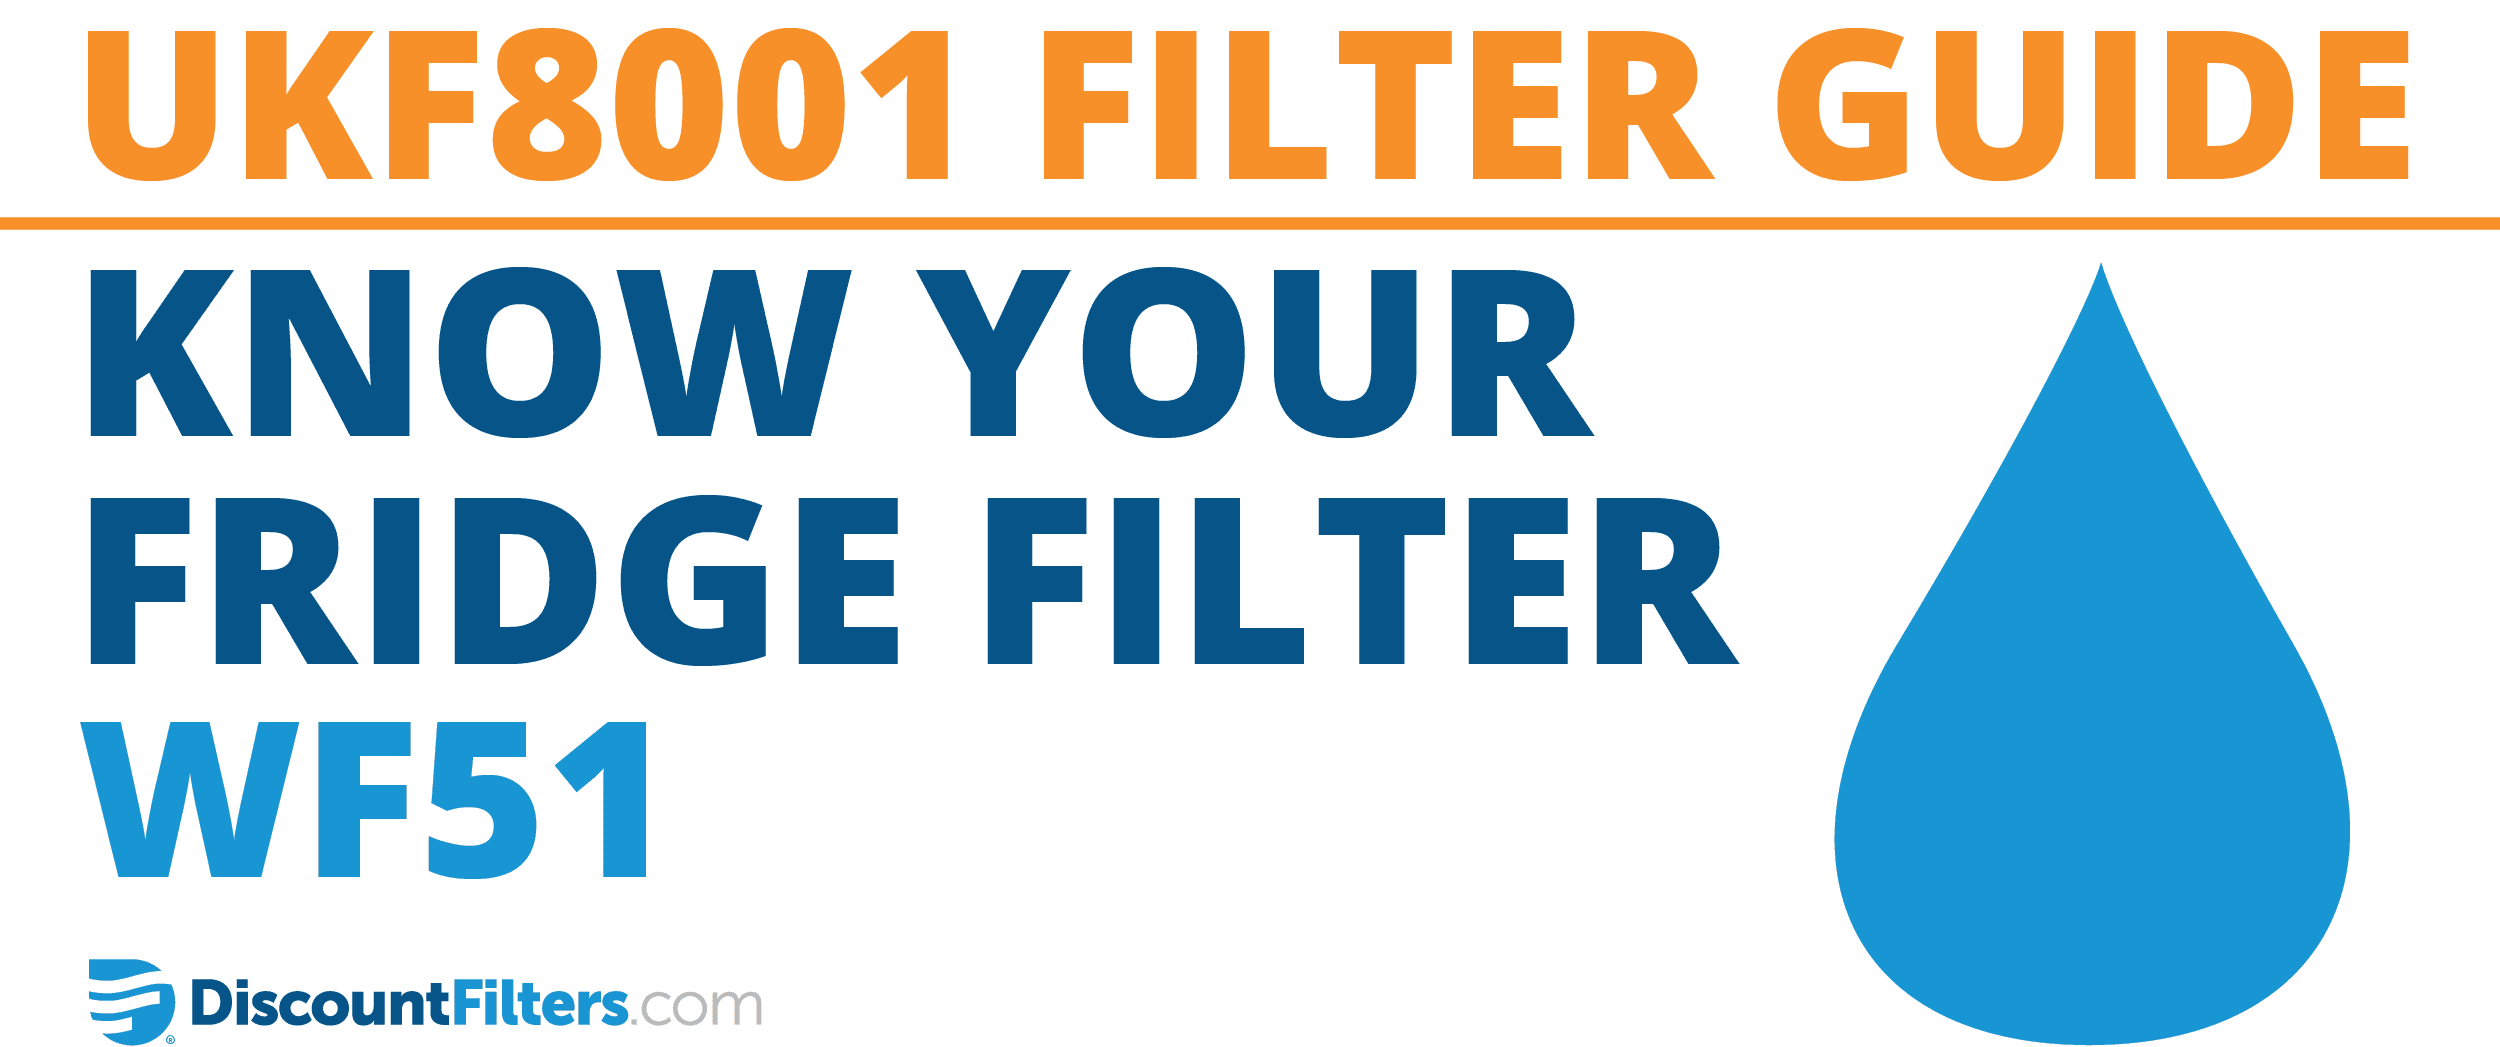 know your fridge filter wf51 a ukf8001 replacement